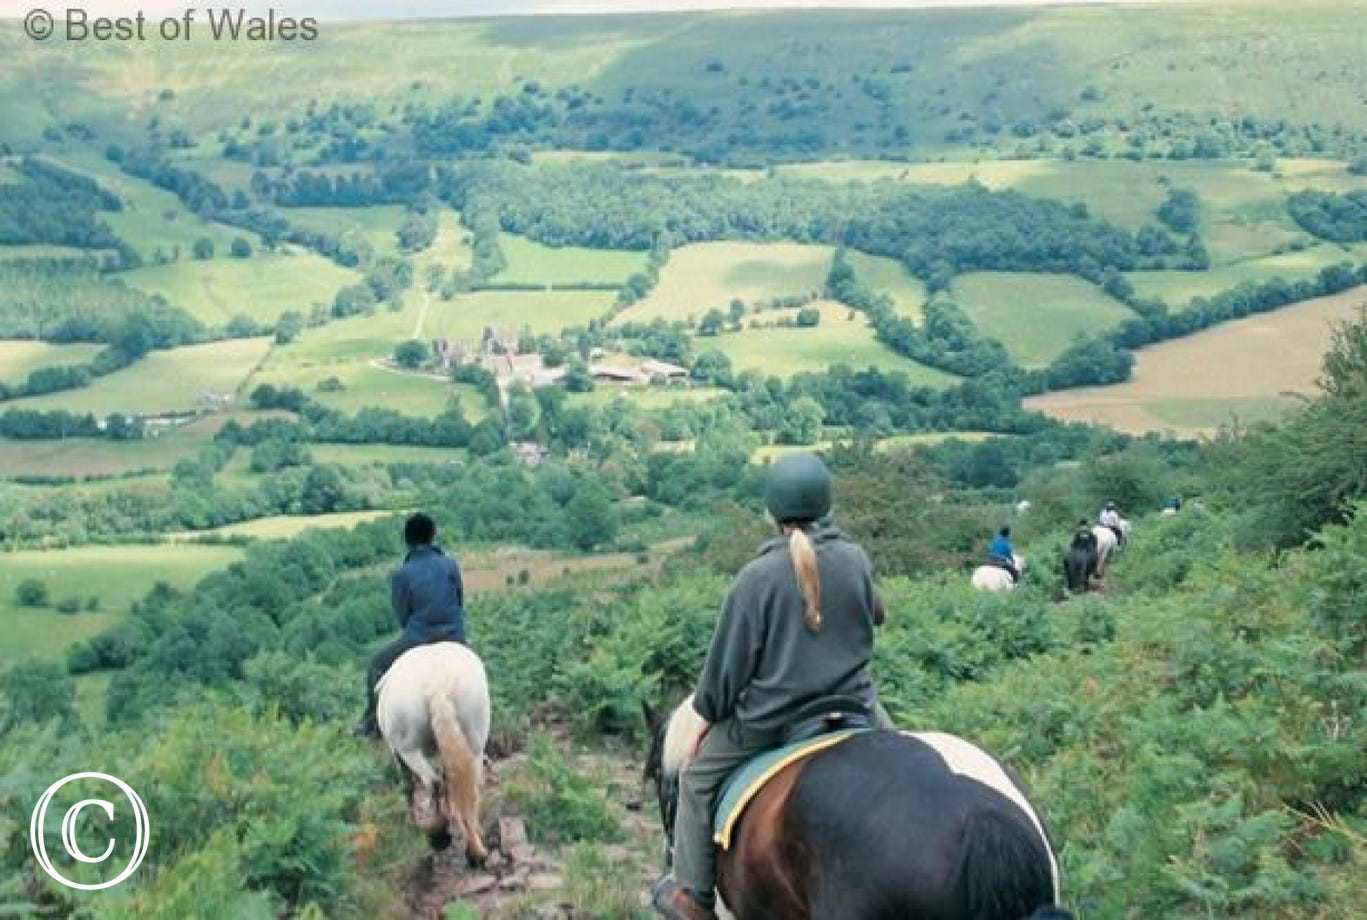 Horse riding in the Brecon Beacons